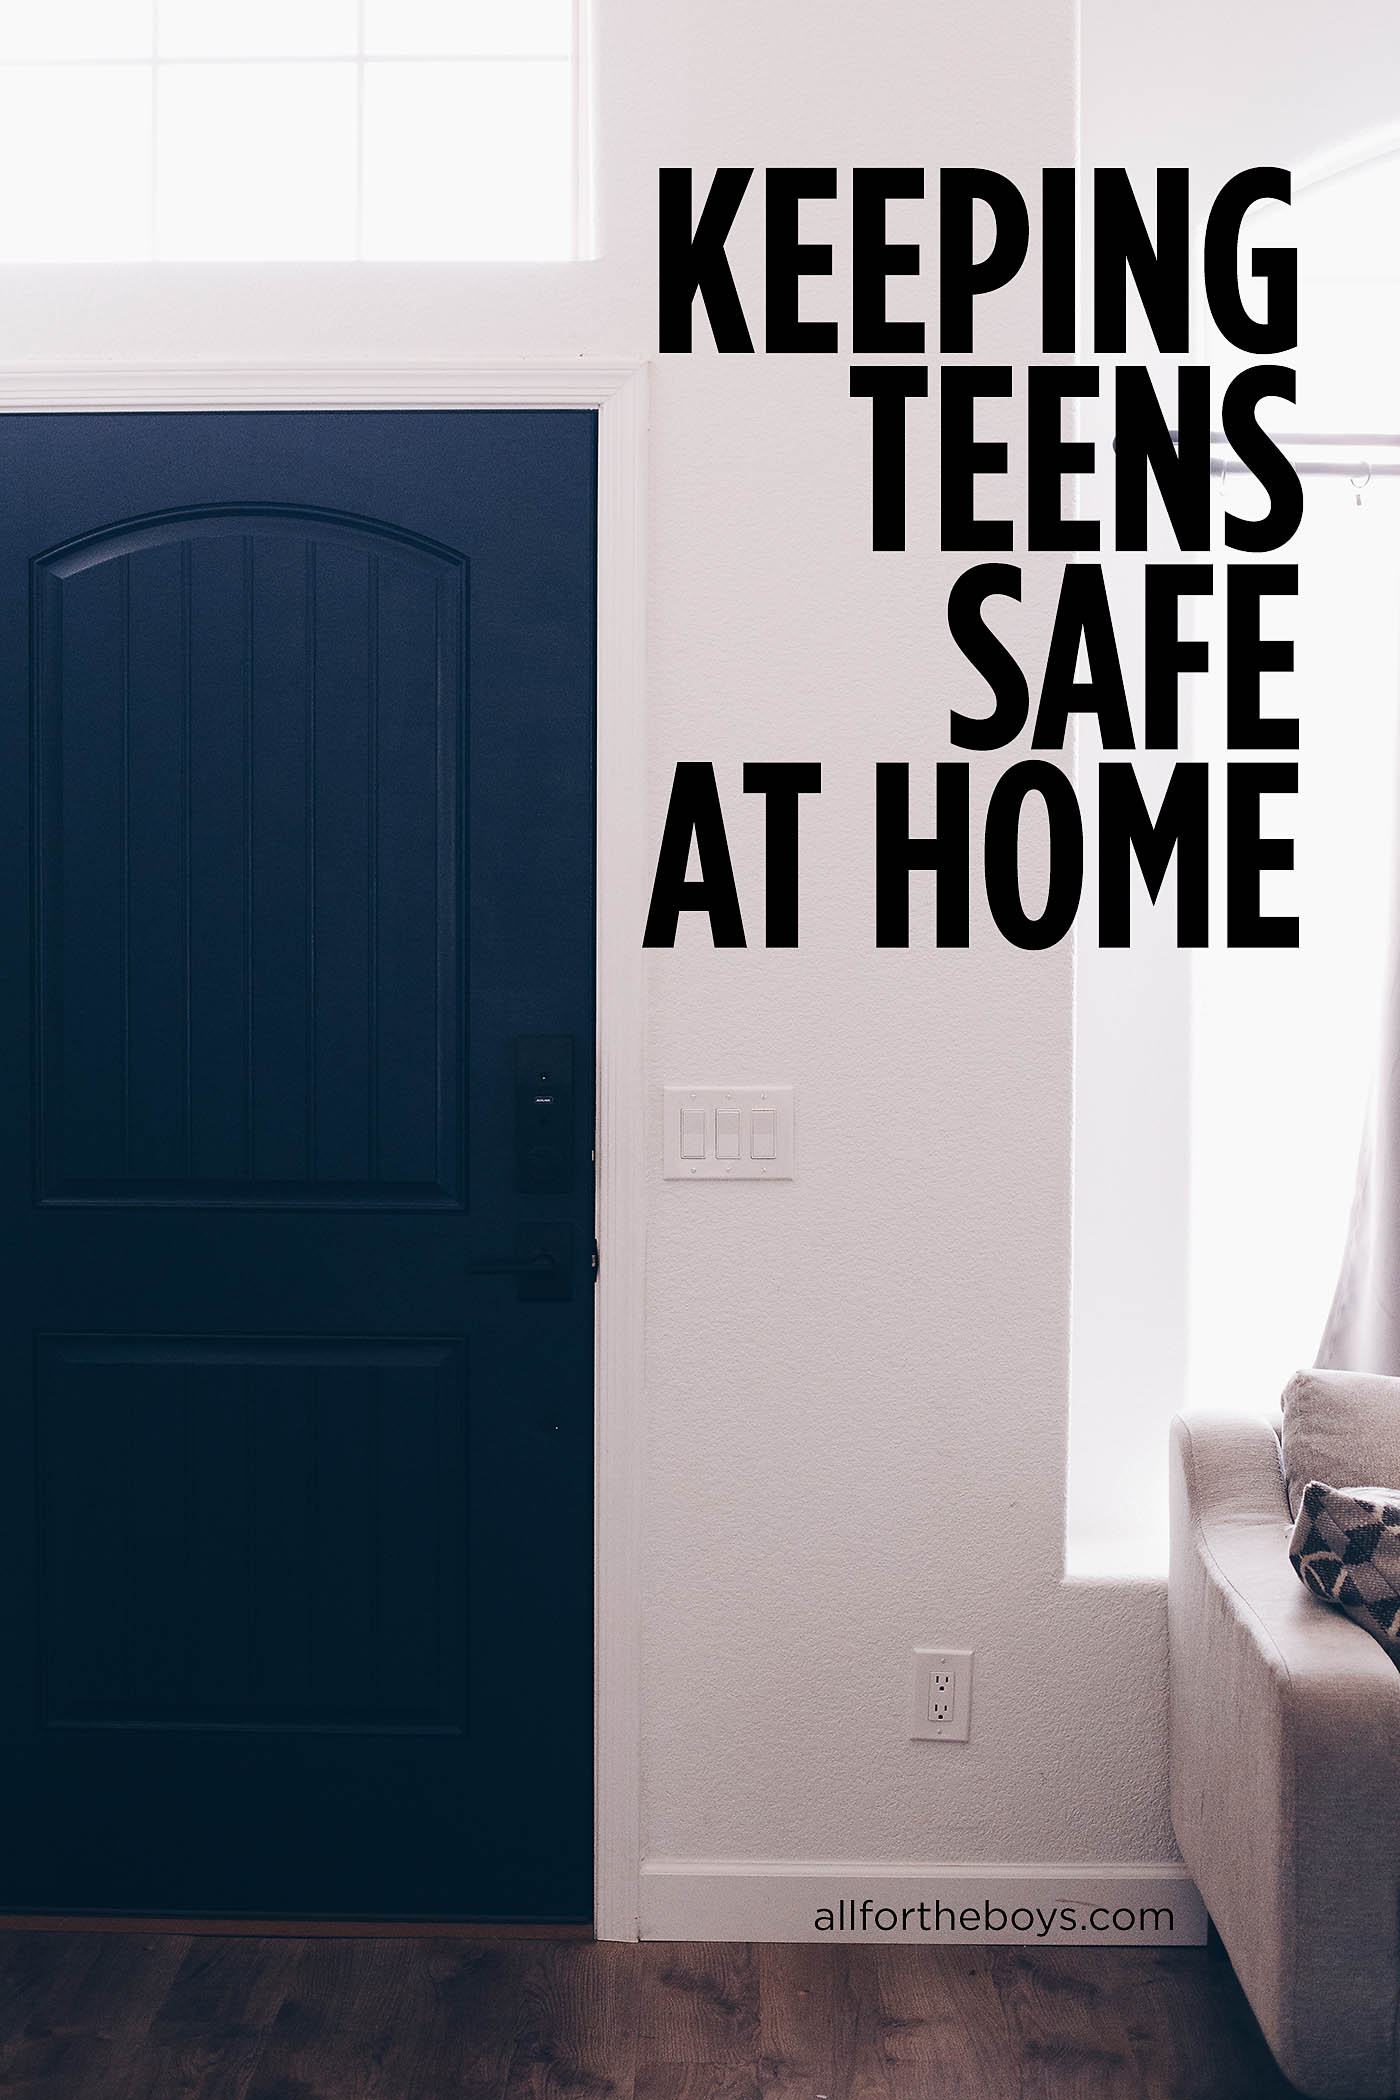 Keeping teens safe at home